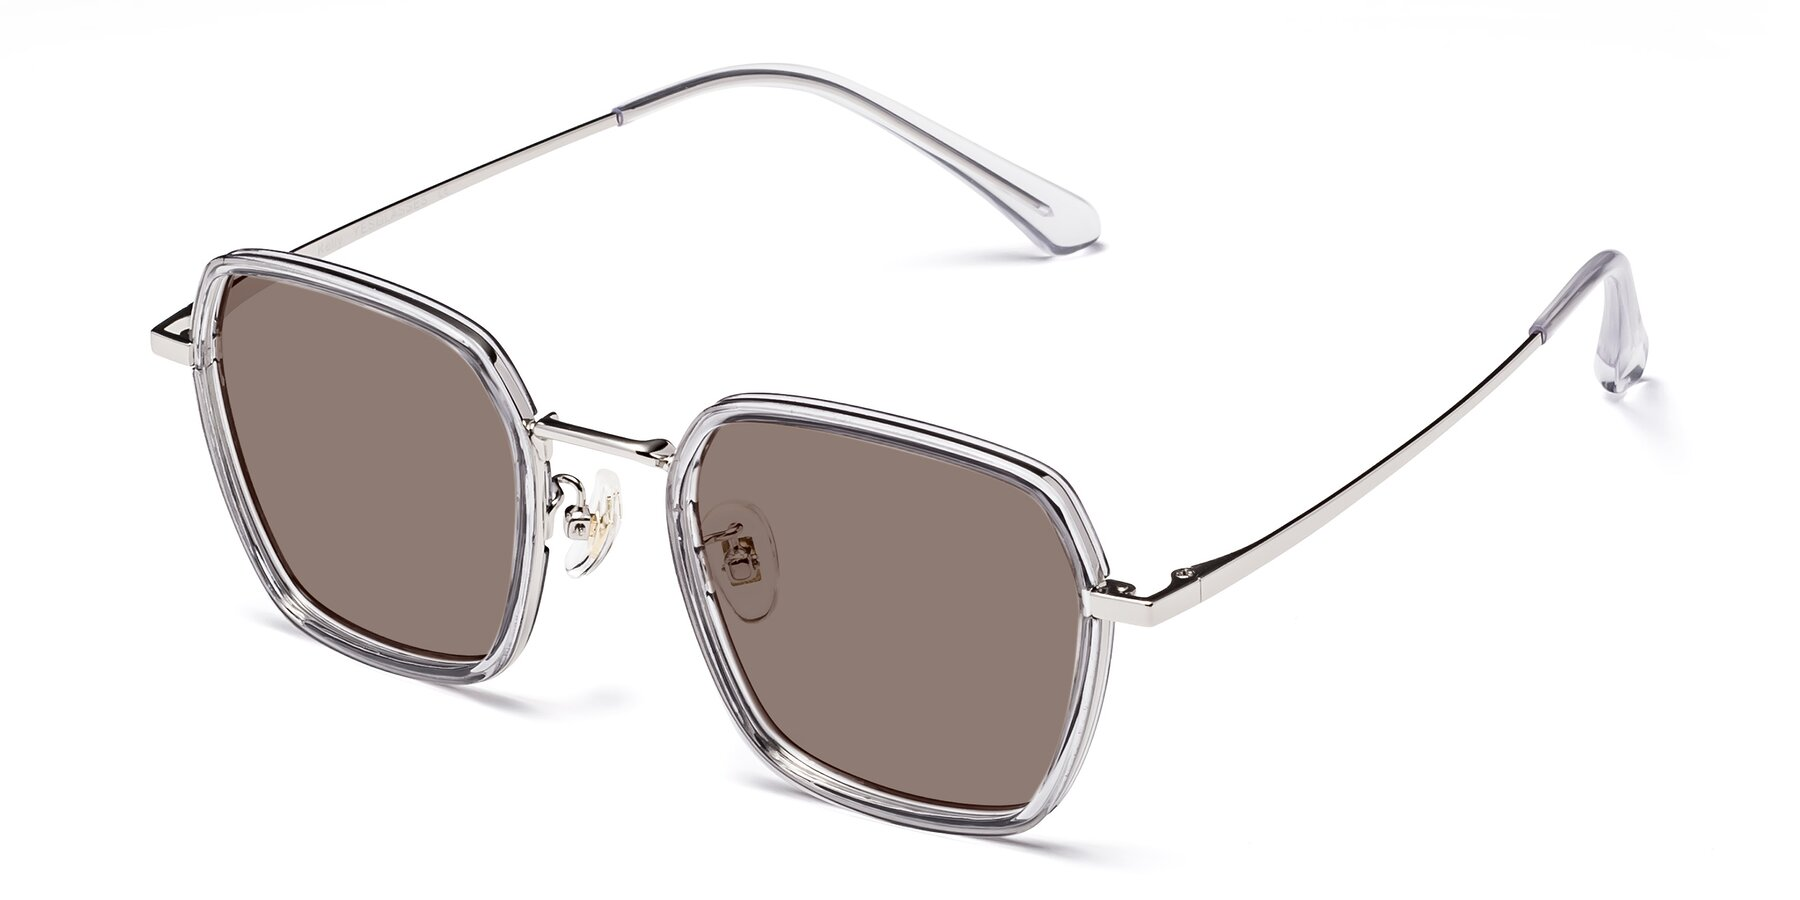 Angle of Kelly in Light Gray-Silver with Medium Brown Tinted Lenses